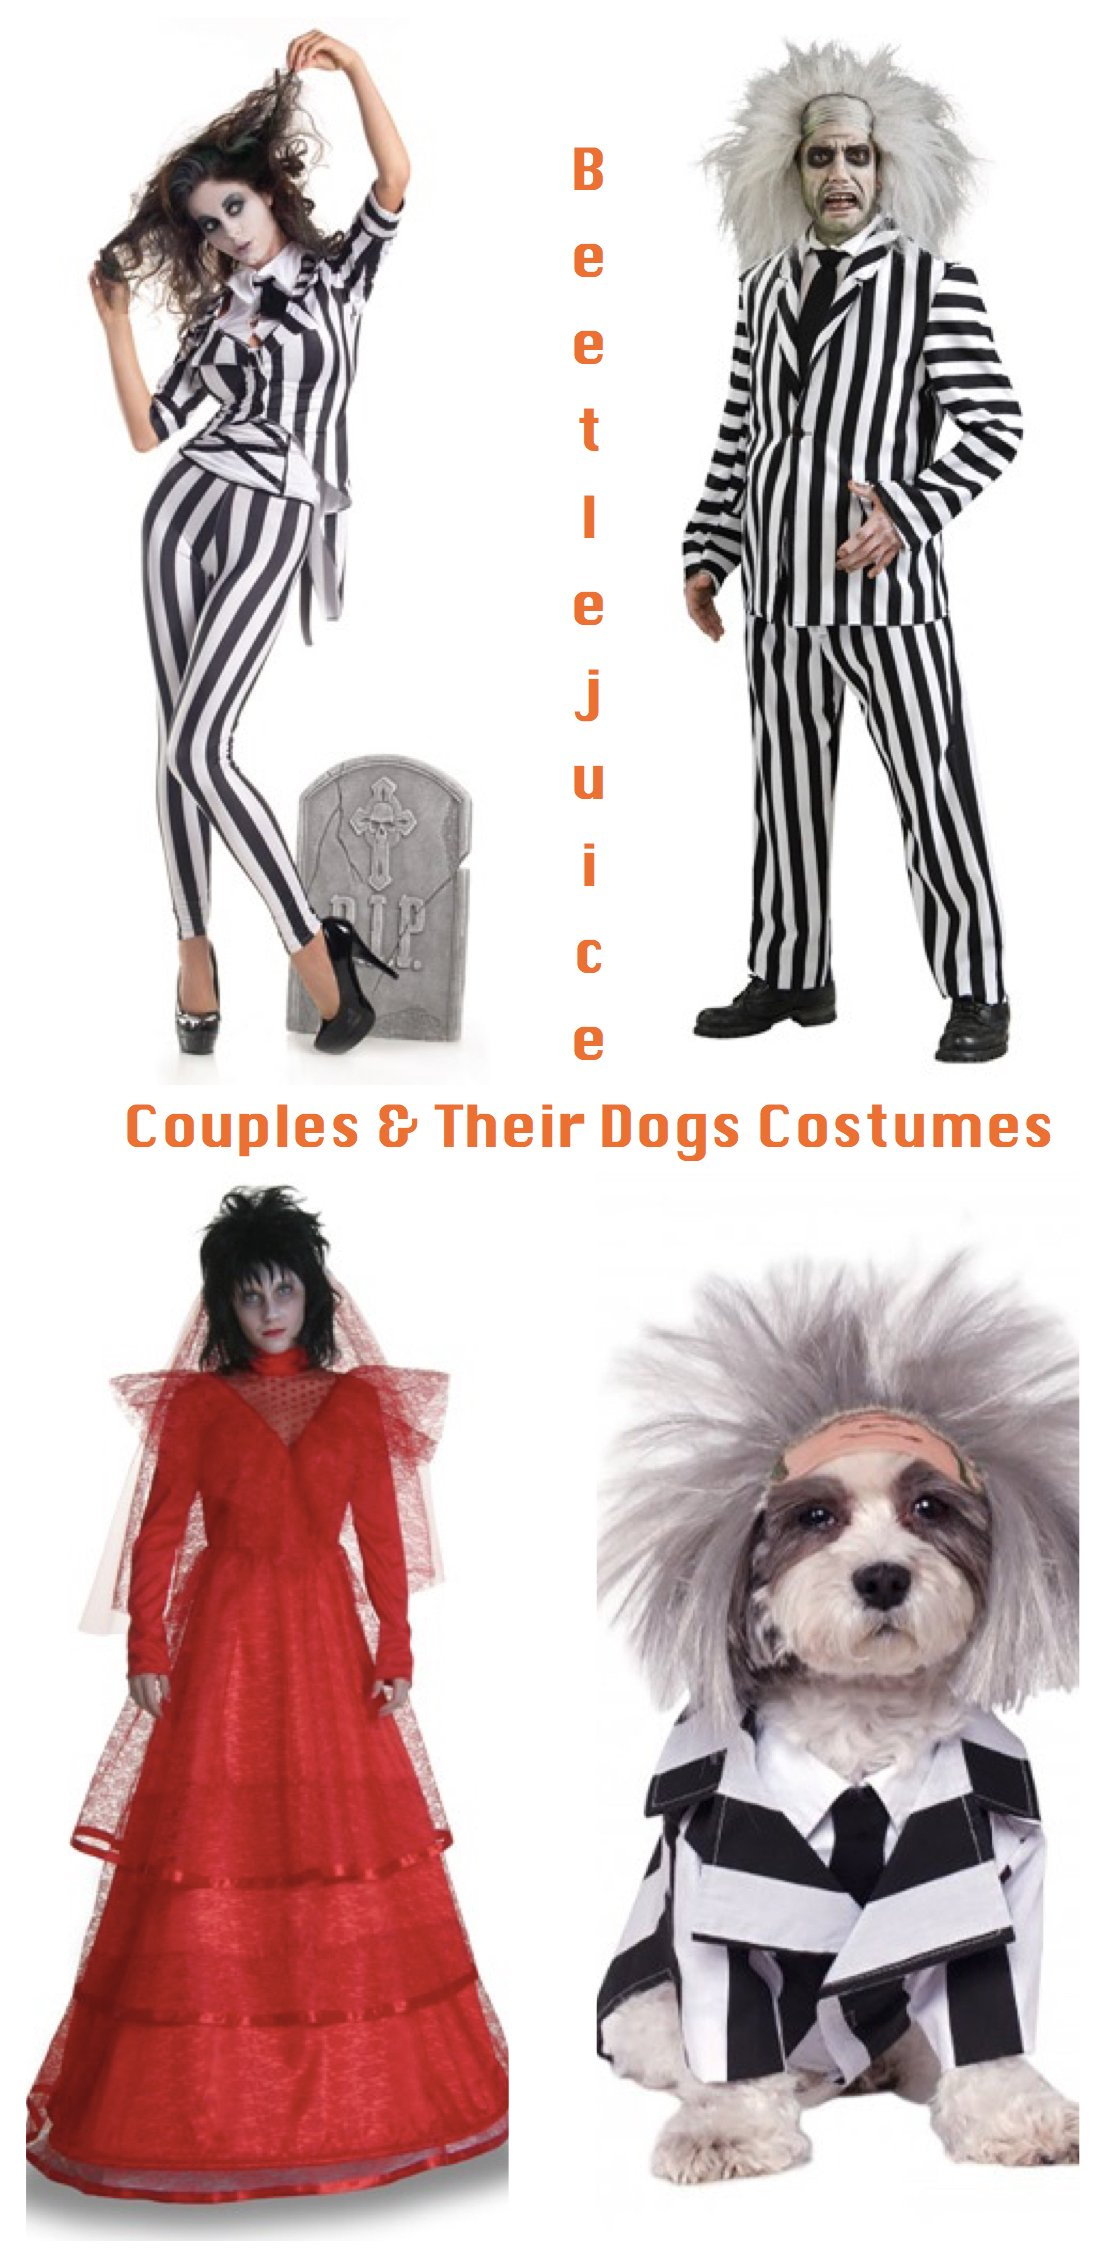 Beetlejuice Couples and Their Dogs Costumes